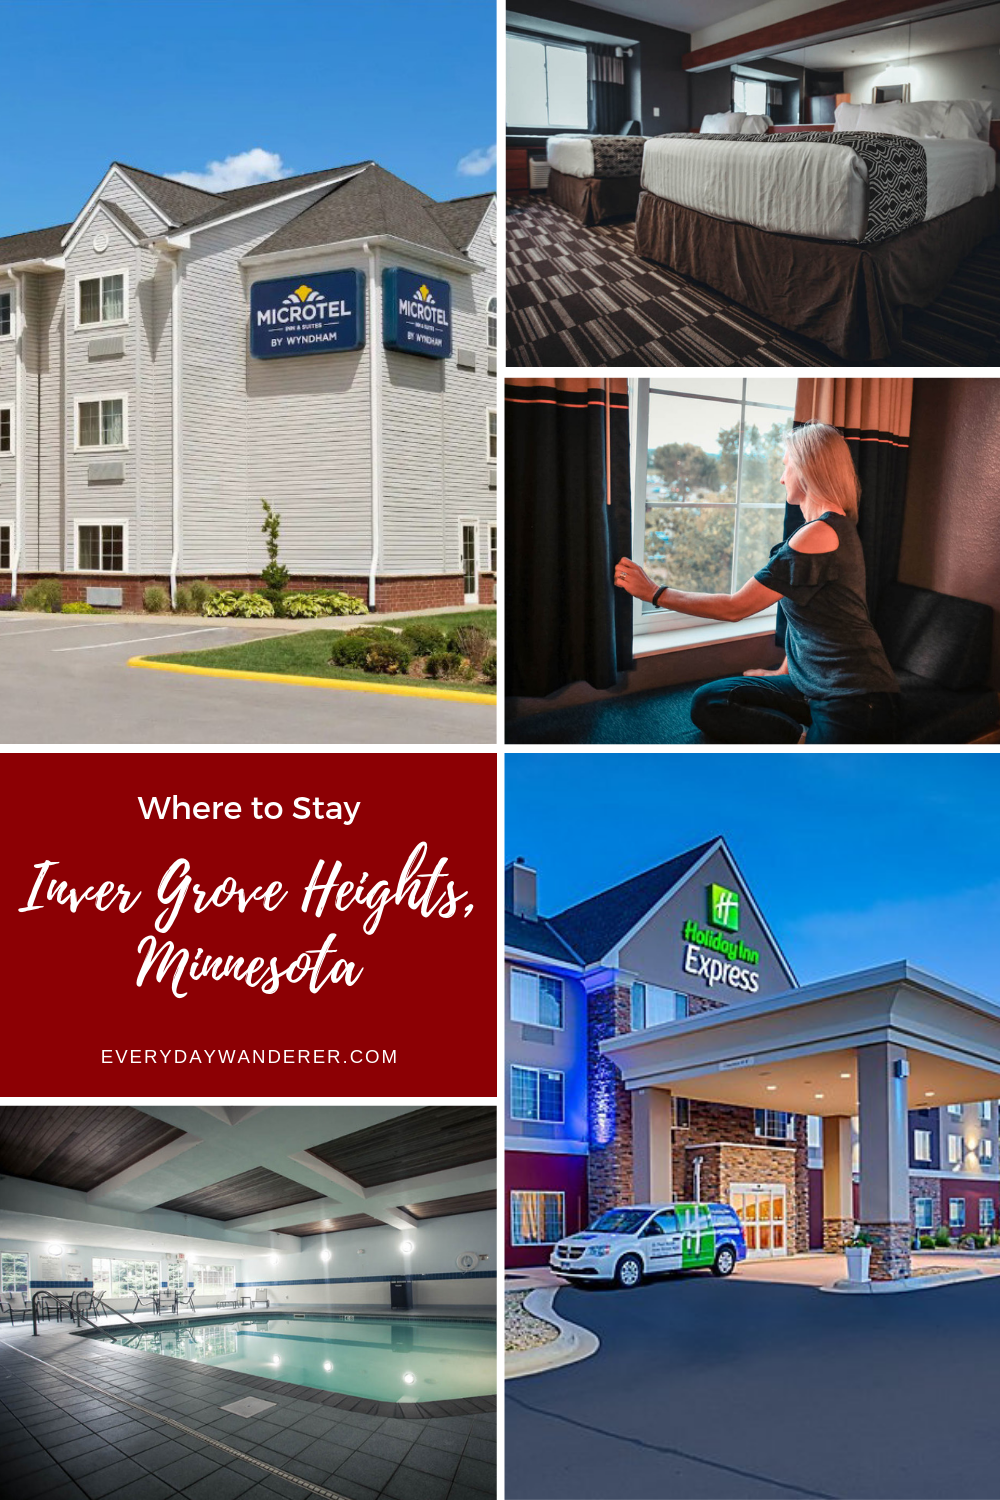 The Best Hotels In Inver Grove Heights Minnesota Midwest Travel Destinations Inver Grove Heights Midwest Travel